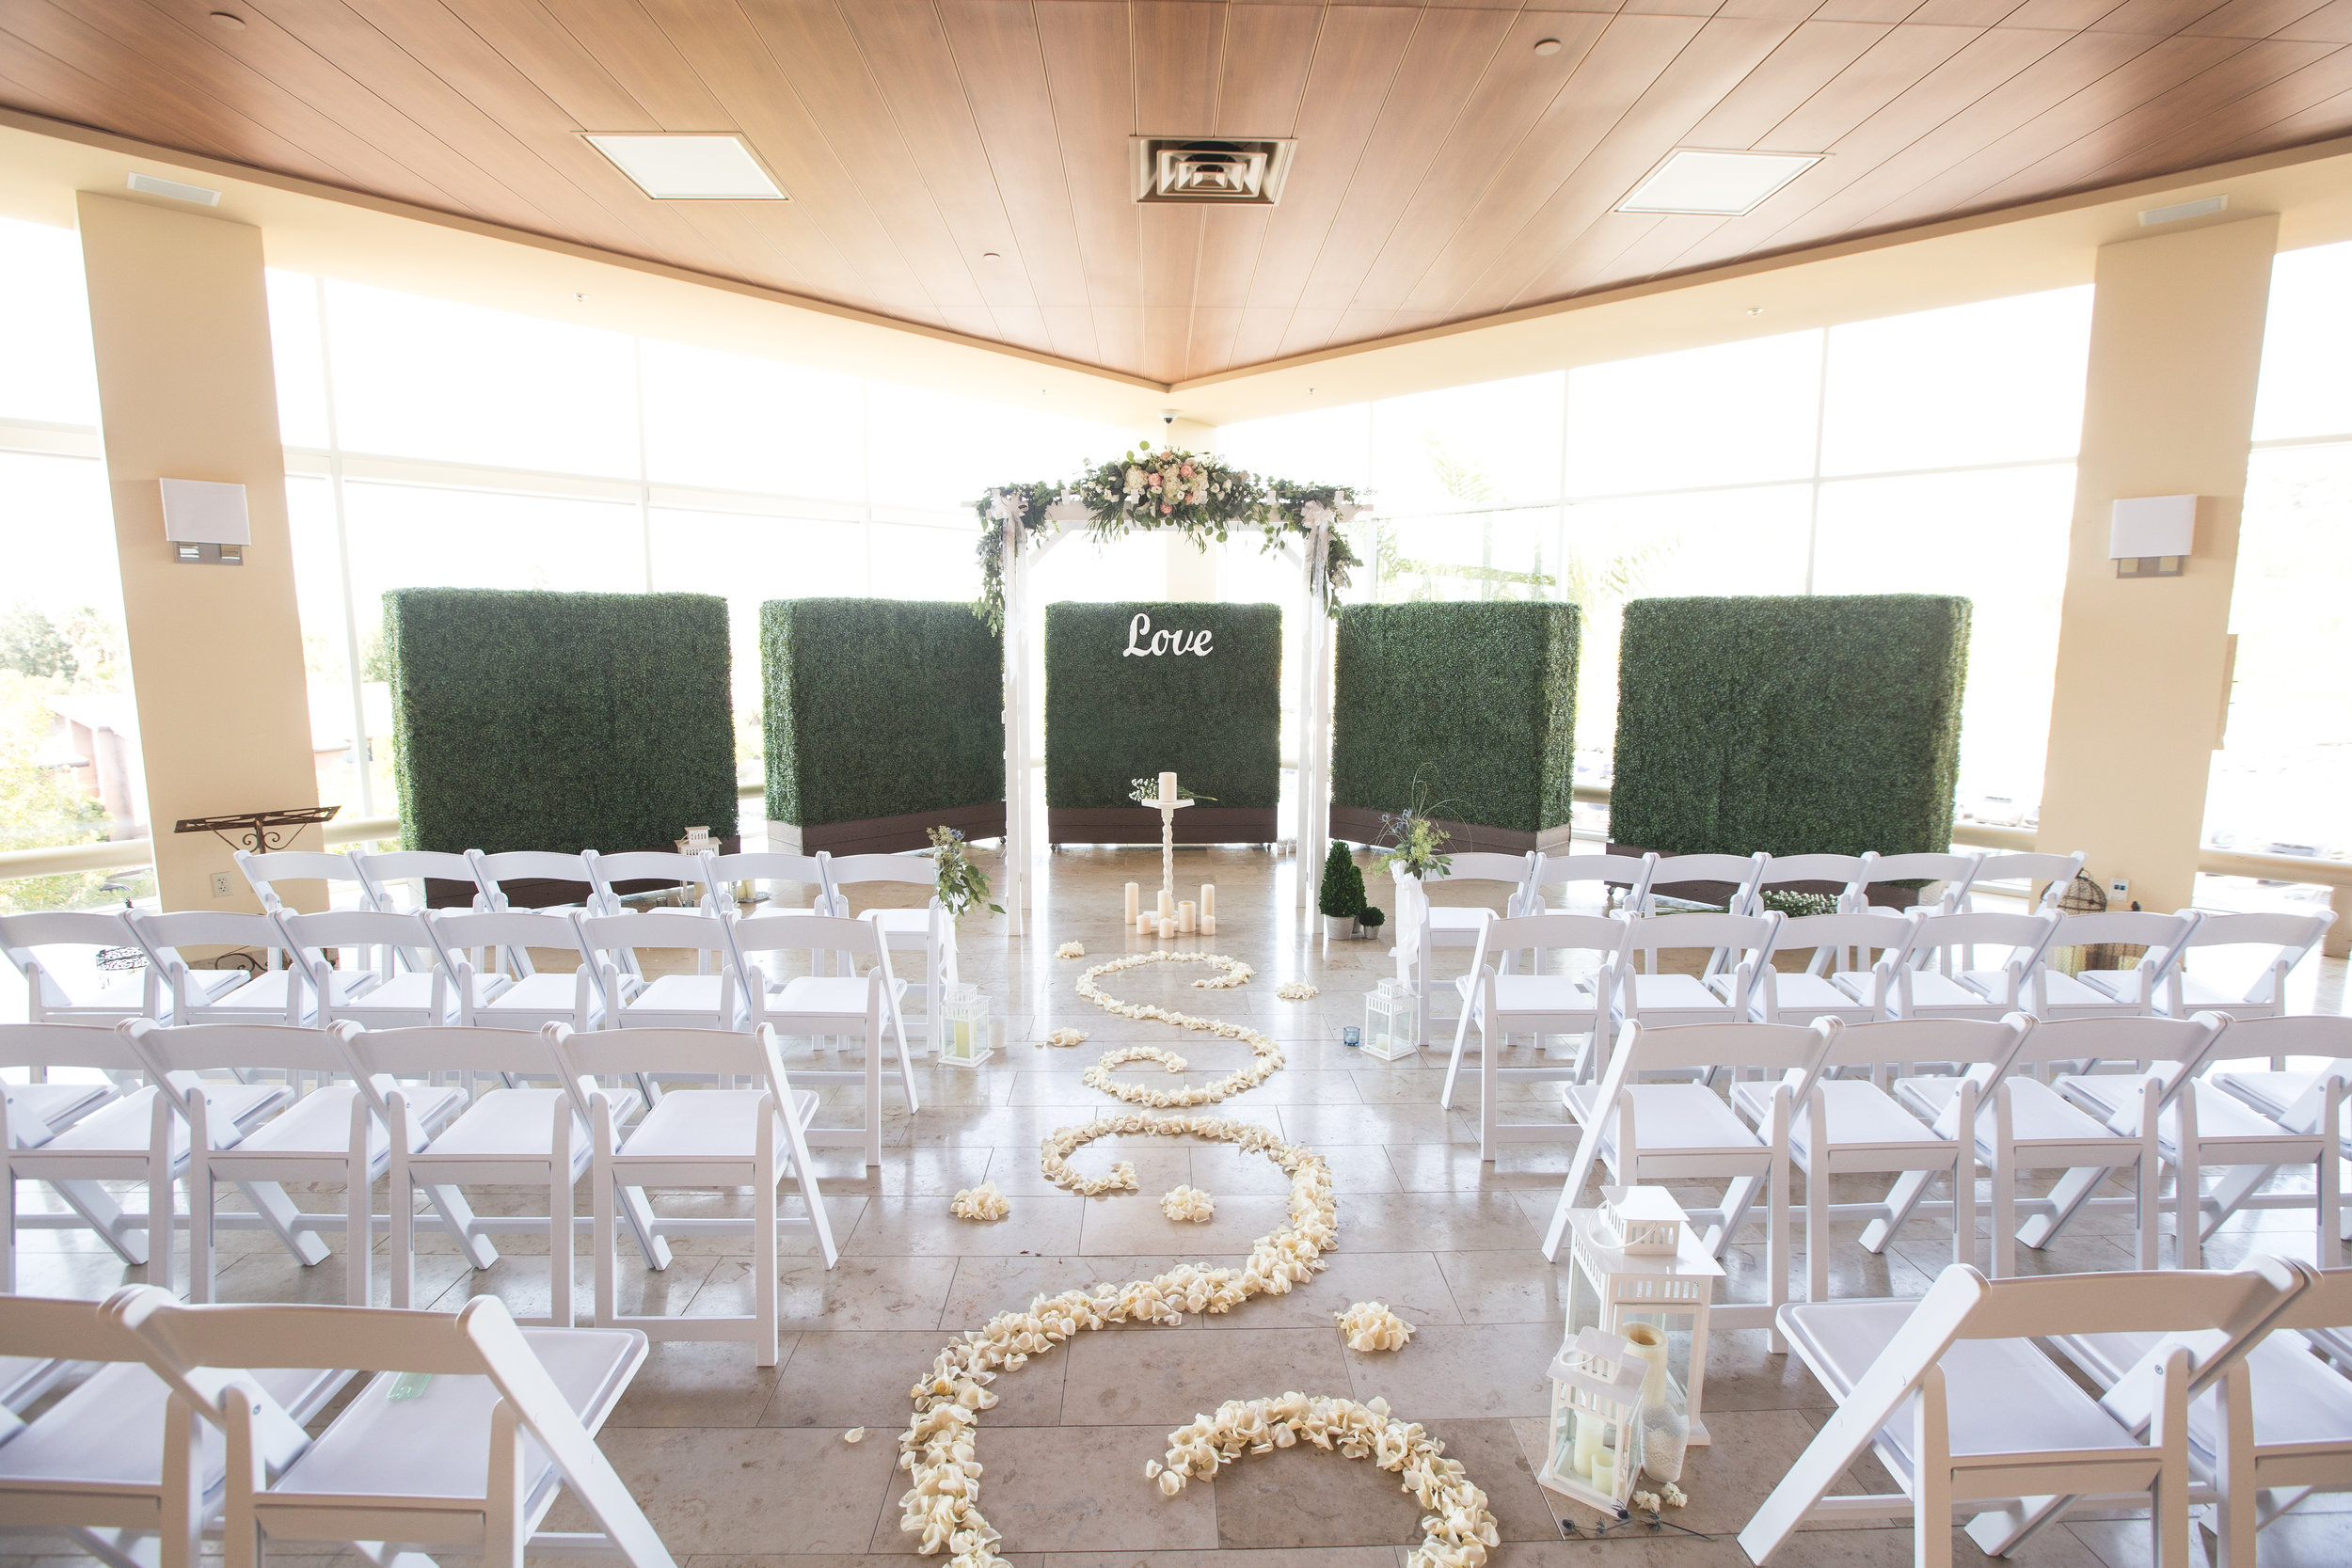 San Diego Event Planning | Events By Lift | Wedding Ceremony Archway